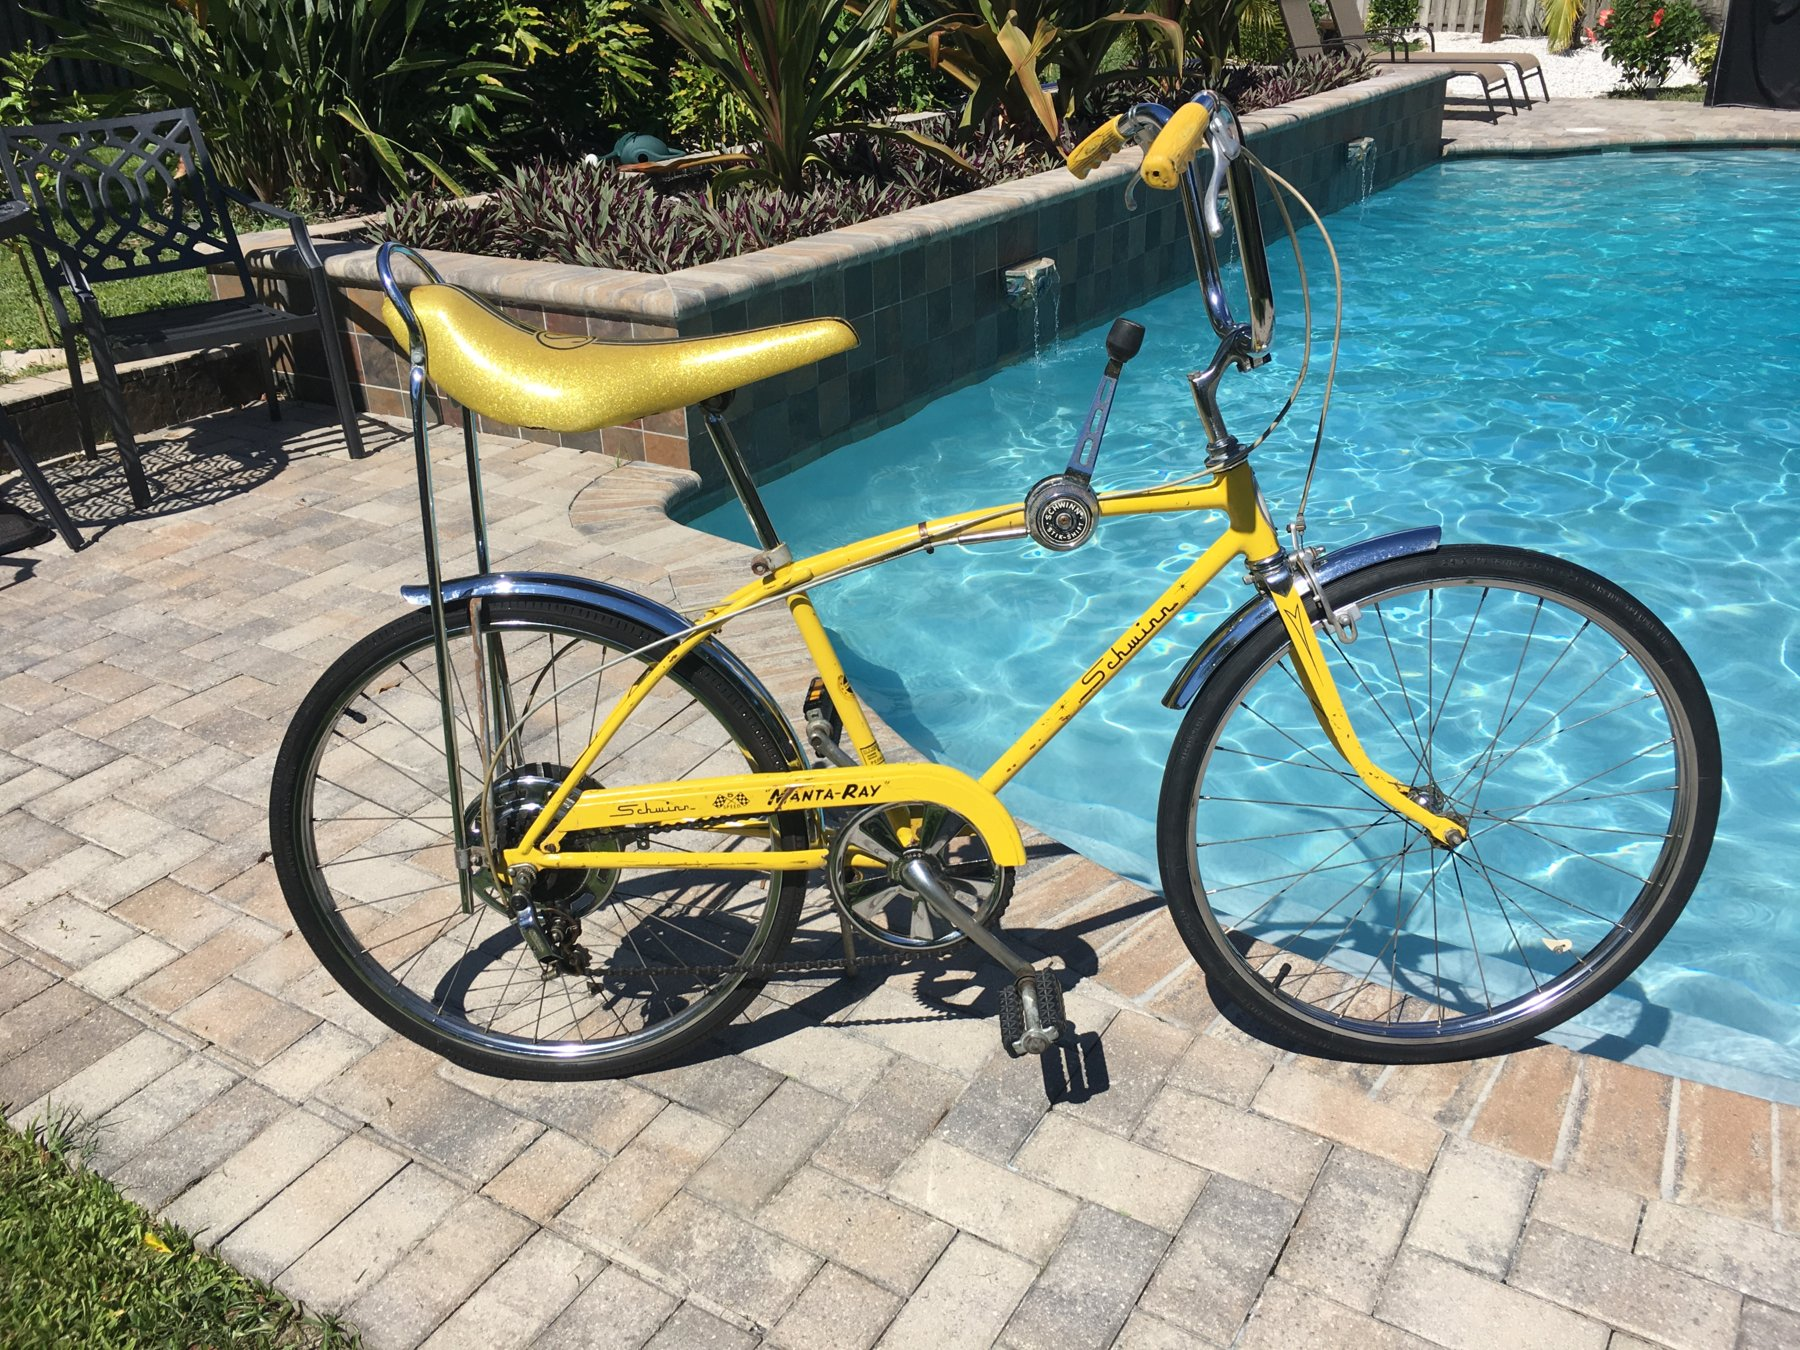 765dea660aa Sold - February 1972 Schwinn Manta Ray | The Classic and Antique ...